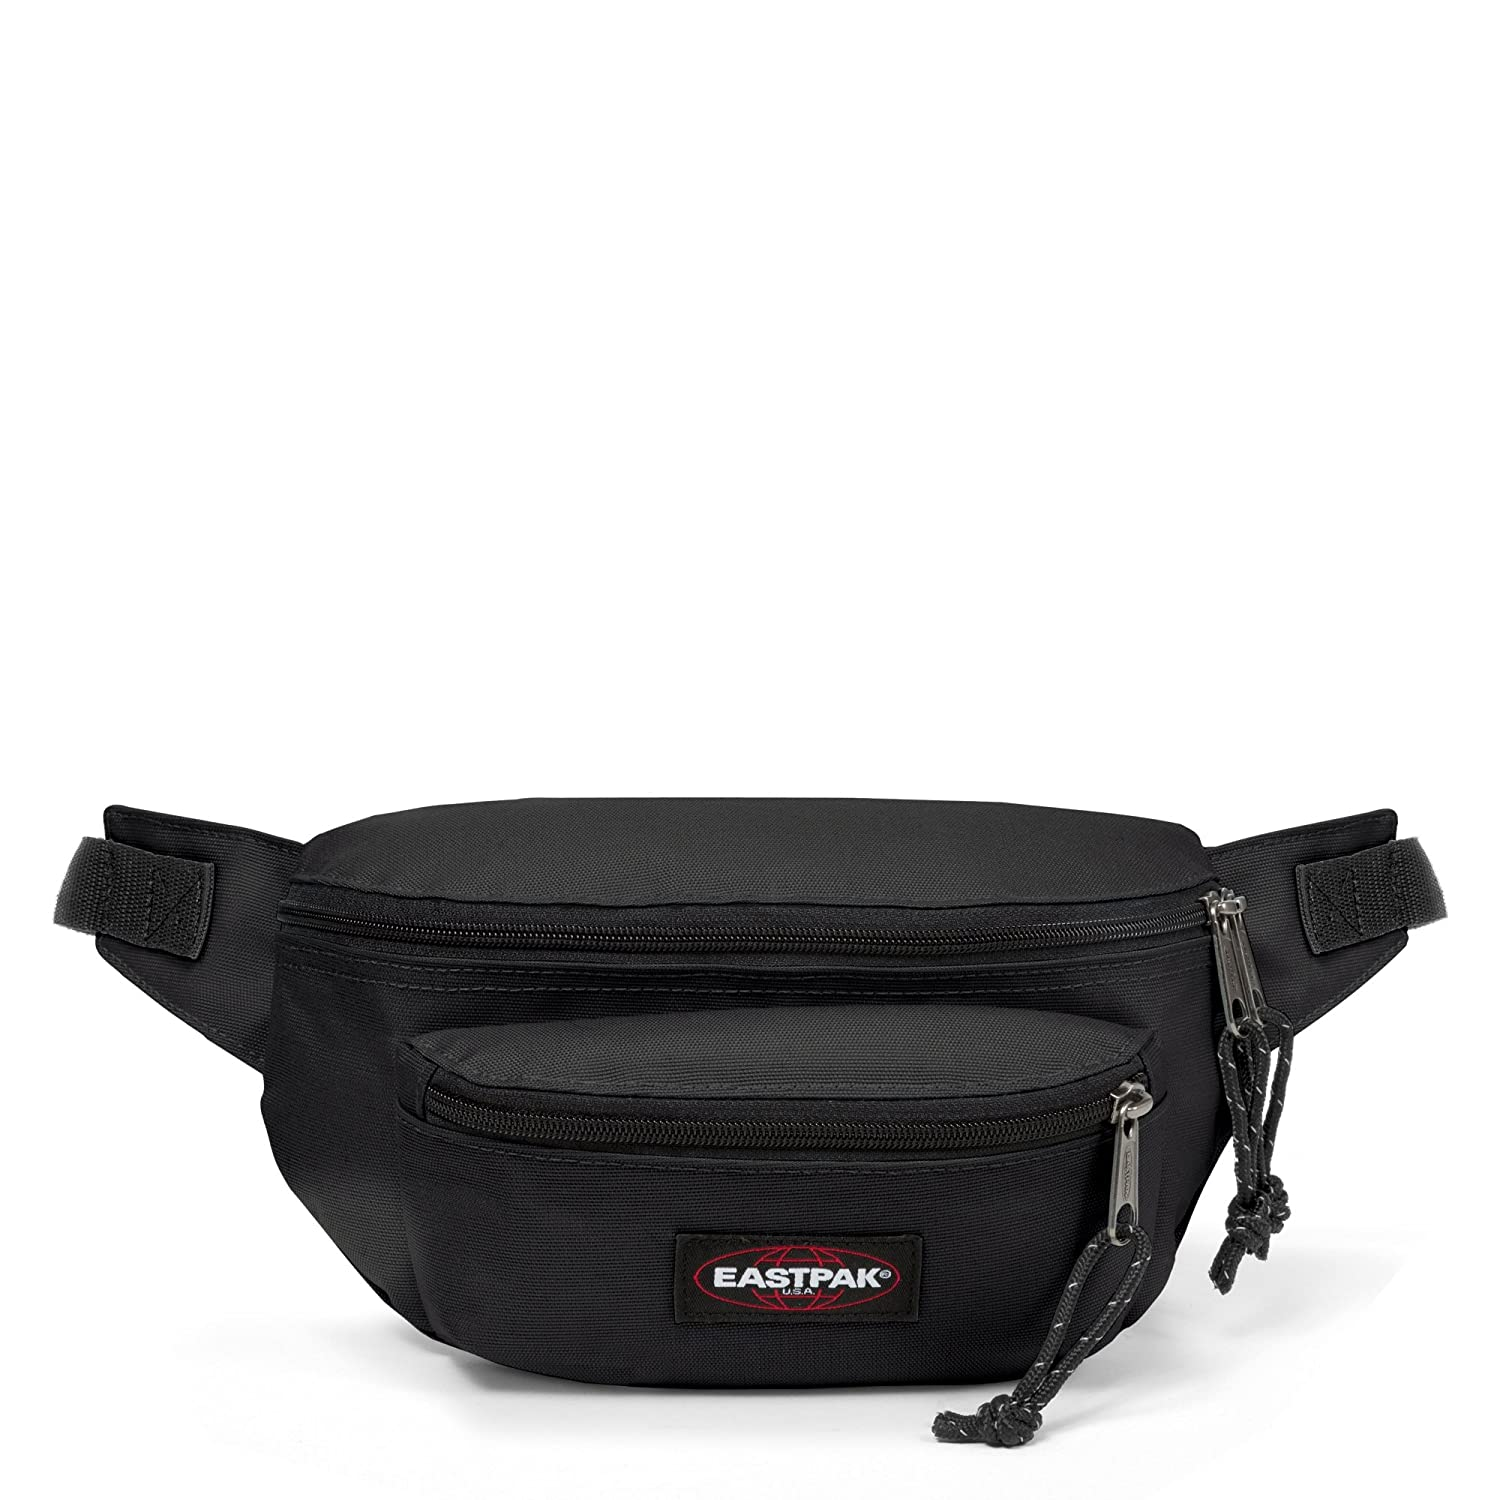 Eastpak Doggy Bag Riñonera litros Negro Black